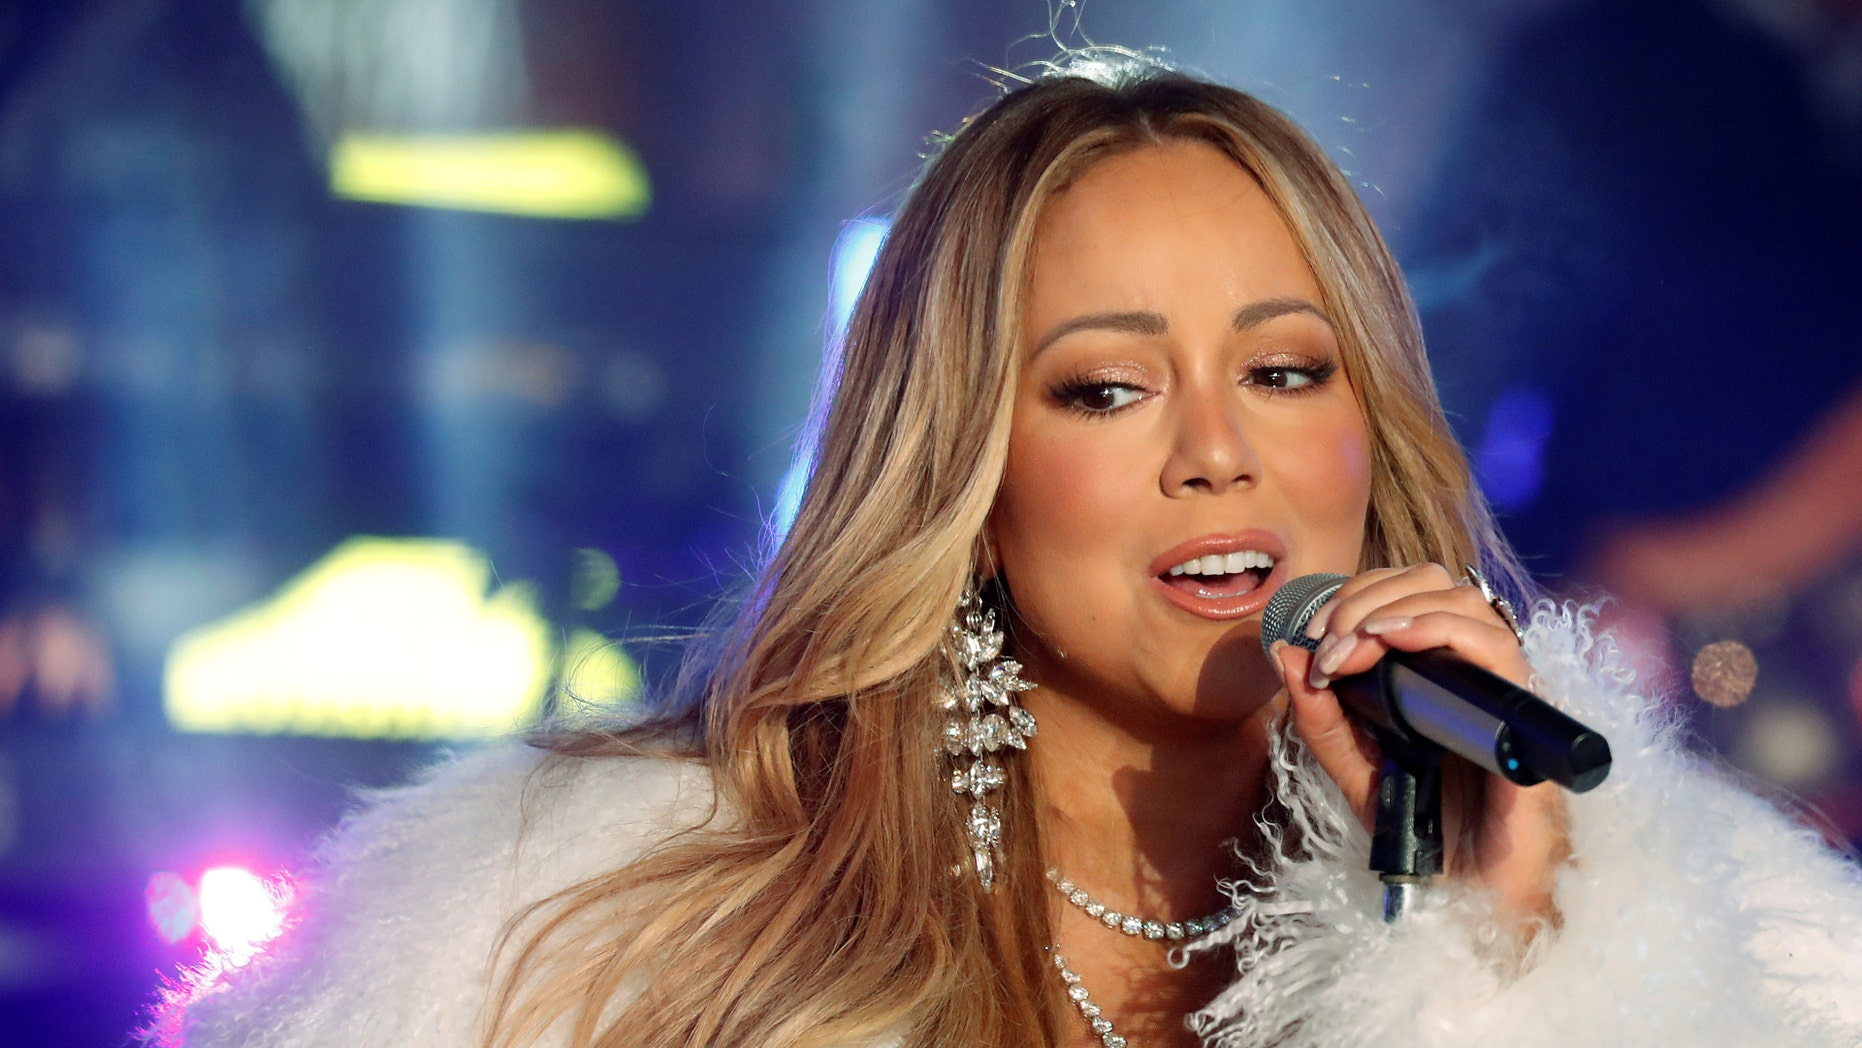 Mariah Carey performs during New Year's eve celebrations in Times Square in New York City, New York, U.S., December 31, 2017. REUTERS/Carlo Allegri - RC1159472B90